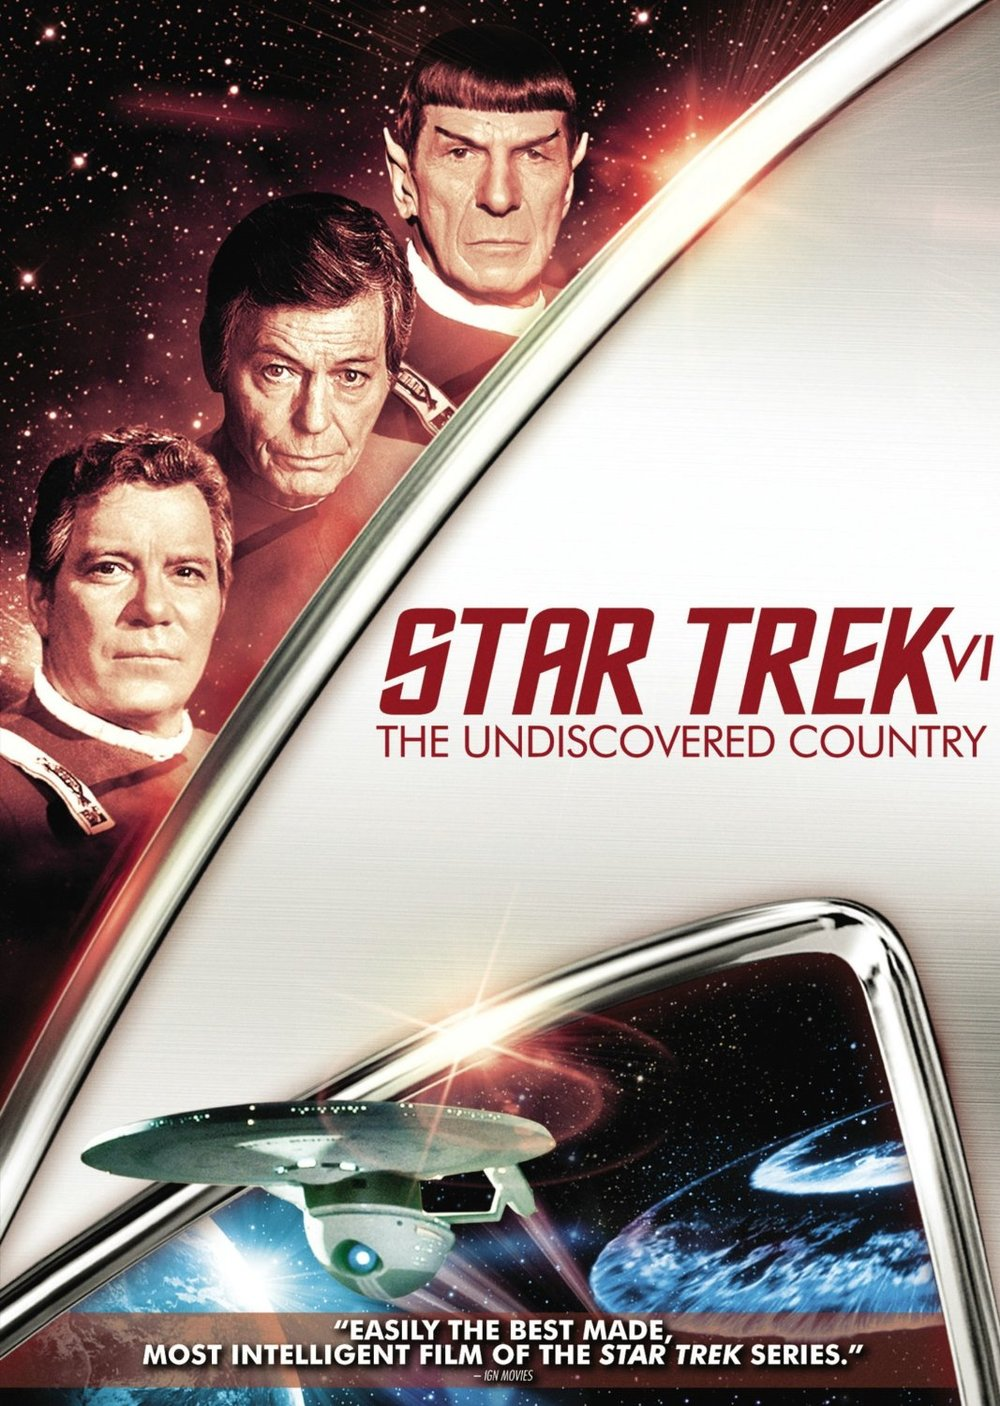 Star_Trek_VI_The_Undiscovered_Country_2009_DVD_cover_Region_1.jpg